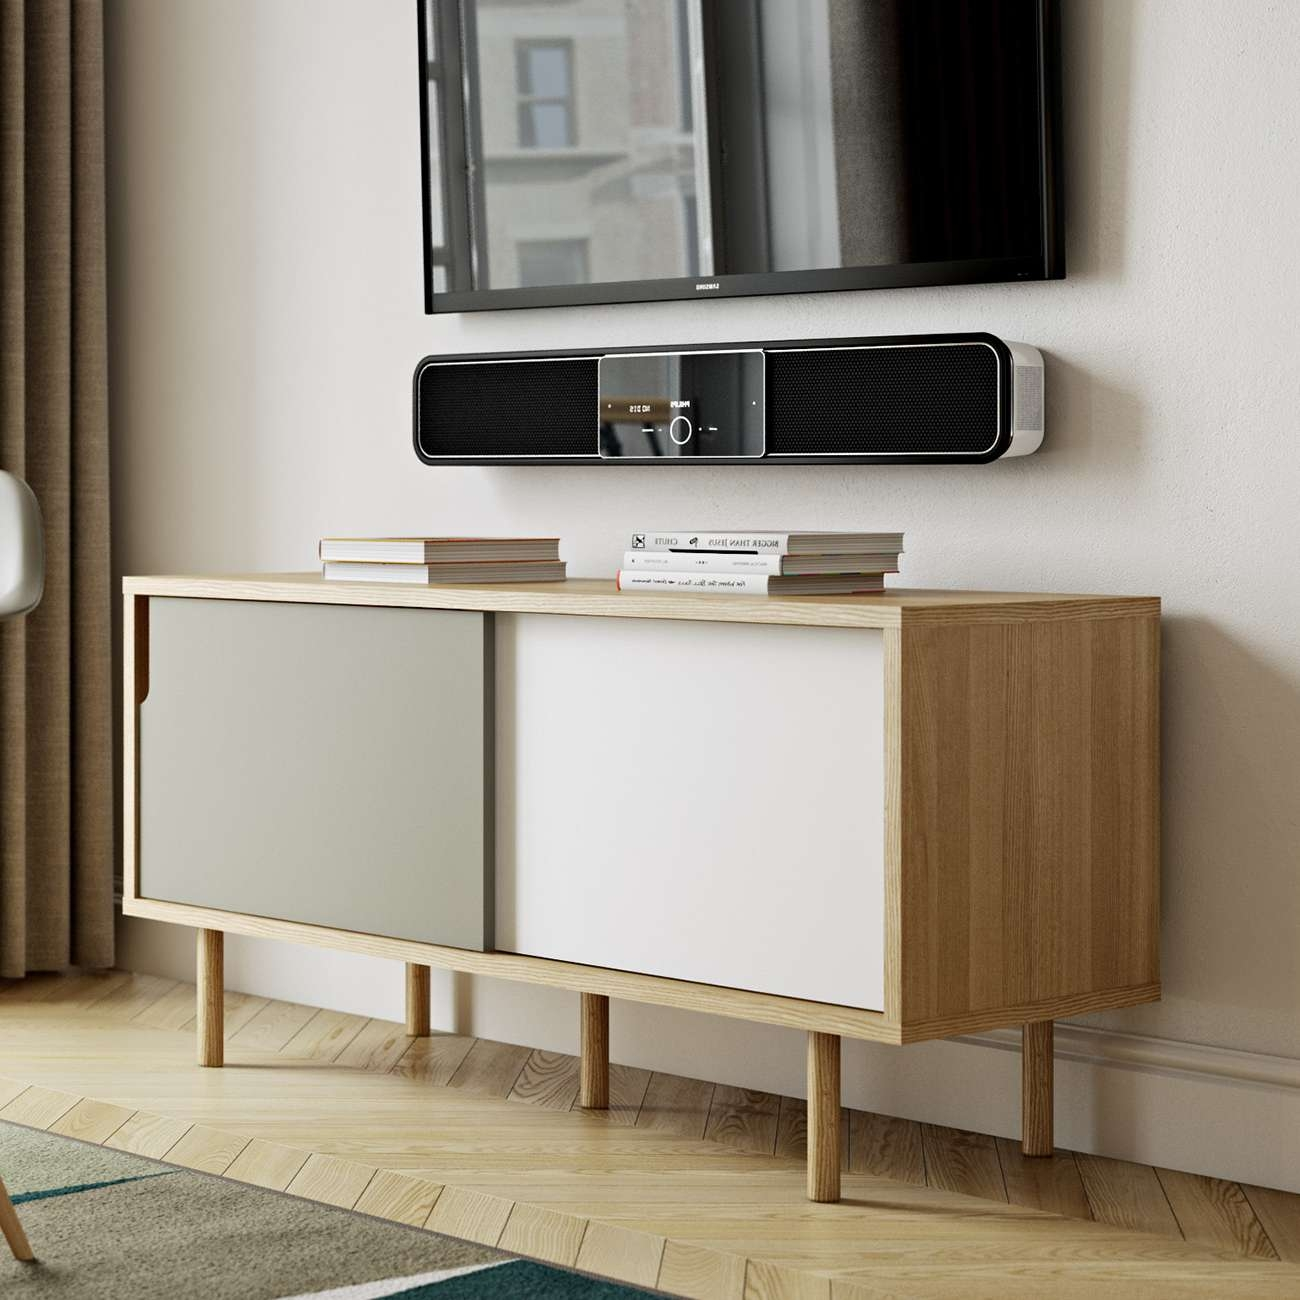 Dann Tv Stand | Oak / Pure White / Grey, Tema Home – Modern Manhattan With White And Wood Tv Stands (View 4 of 15)